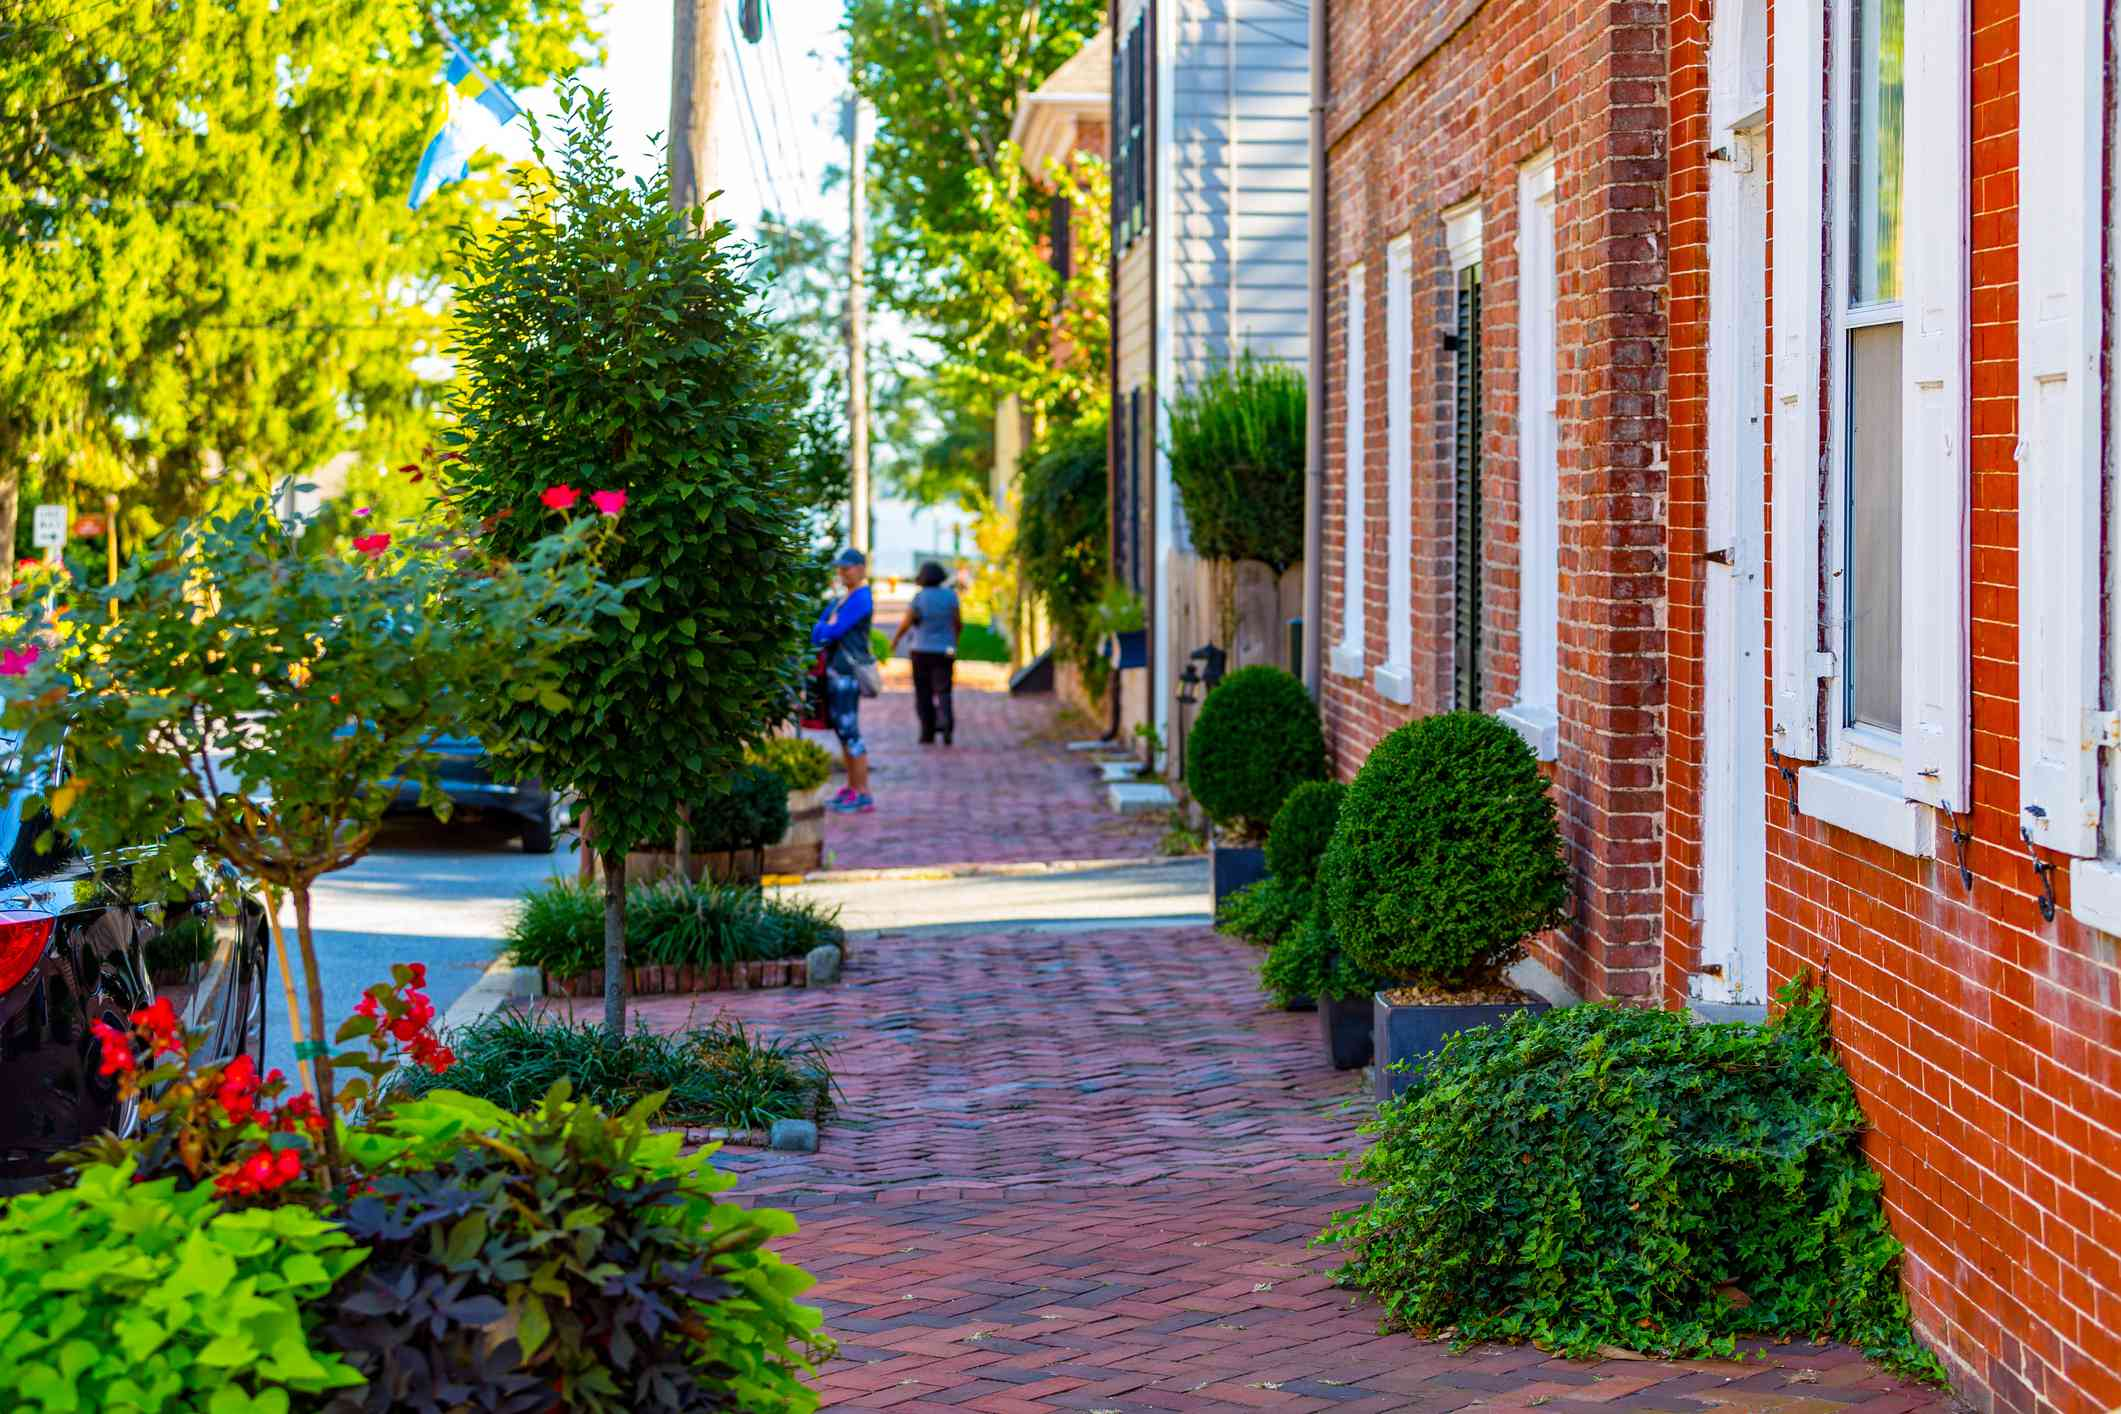 Brick sidewalks with colorful foliage in the historic district of New Castle.